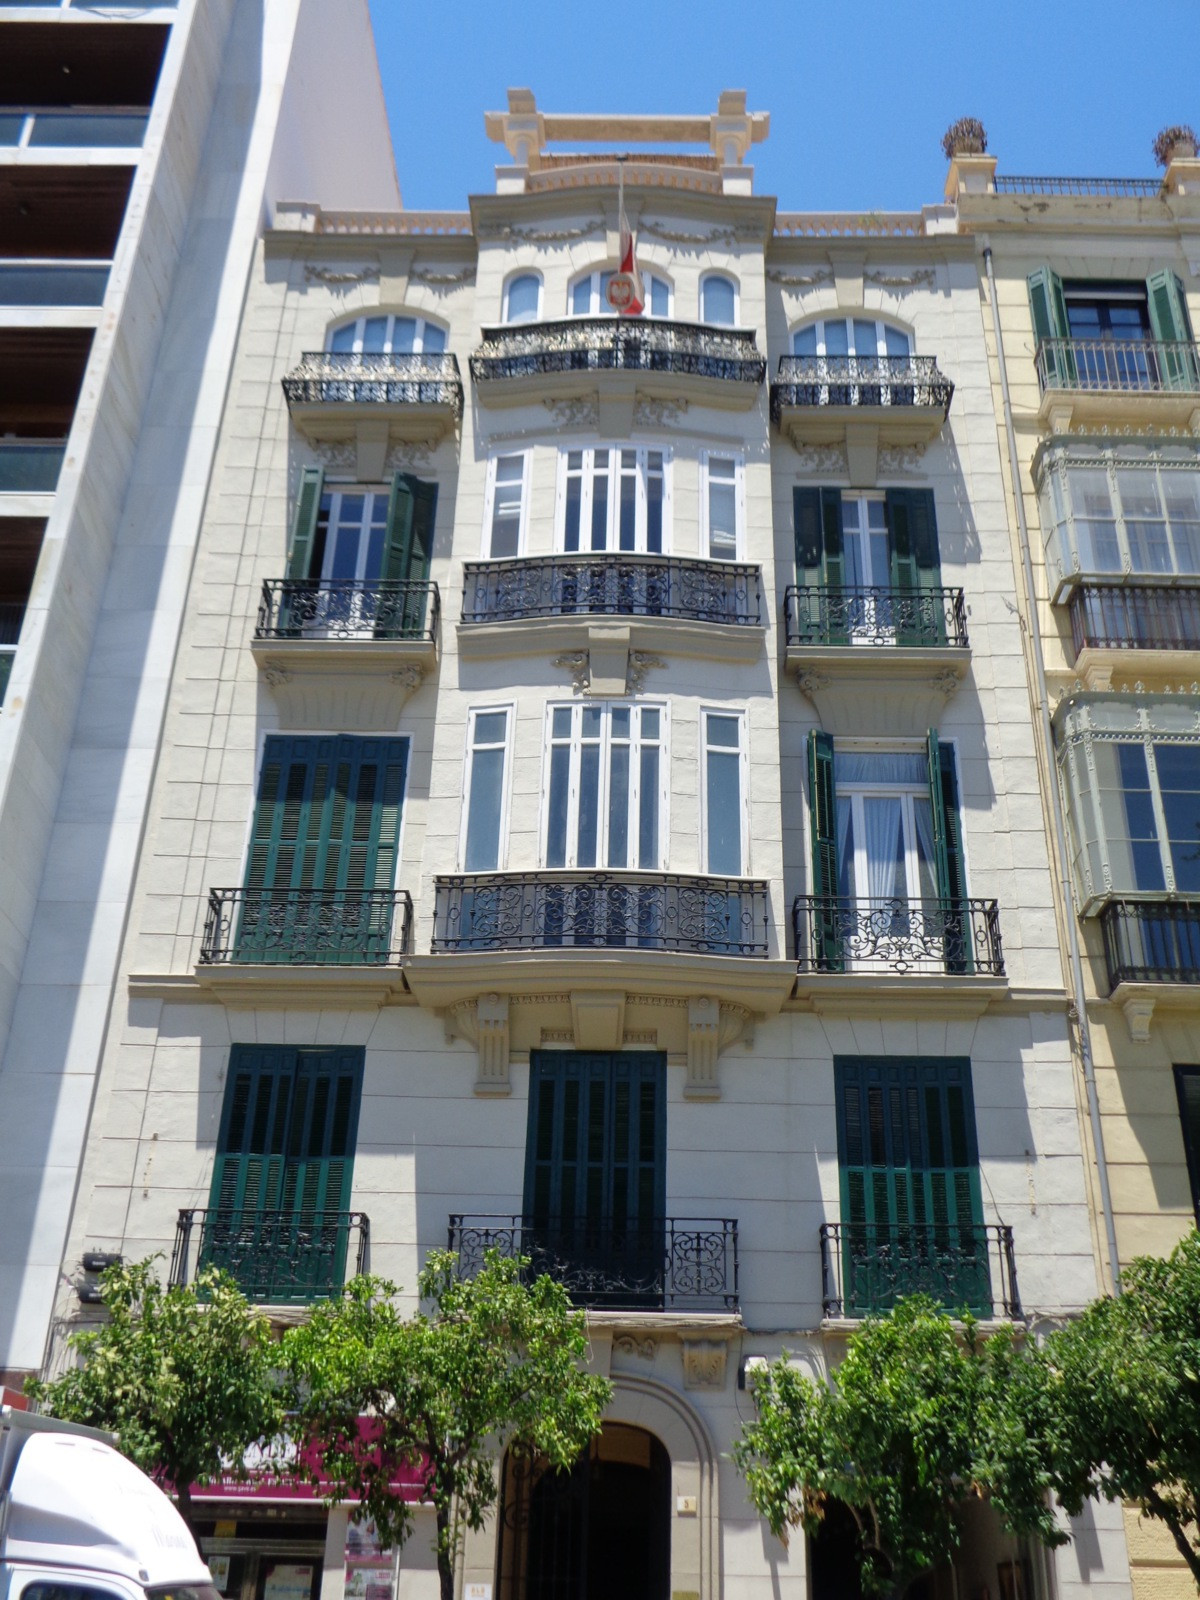 Gorgeous Comercial in the heart of Malaga. Next to Hotel AC Malaga Palacio and the Cathedral. Views , Spain